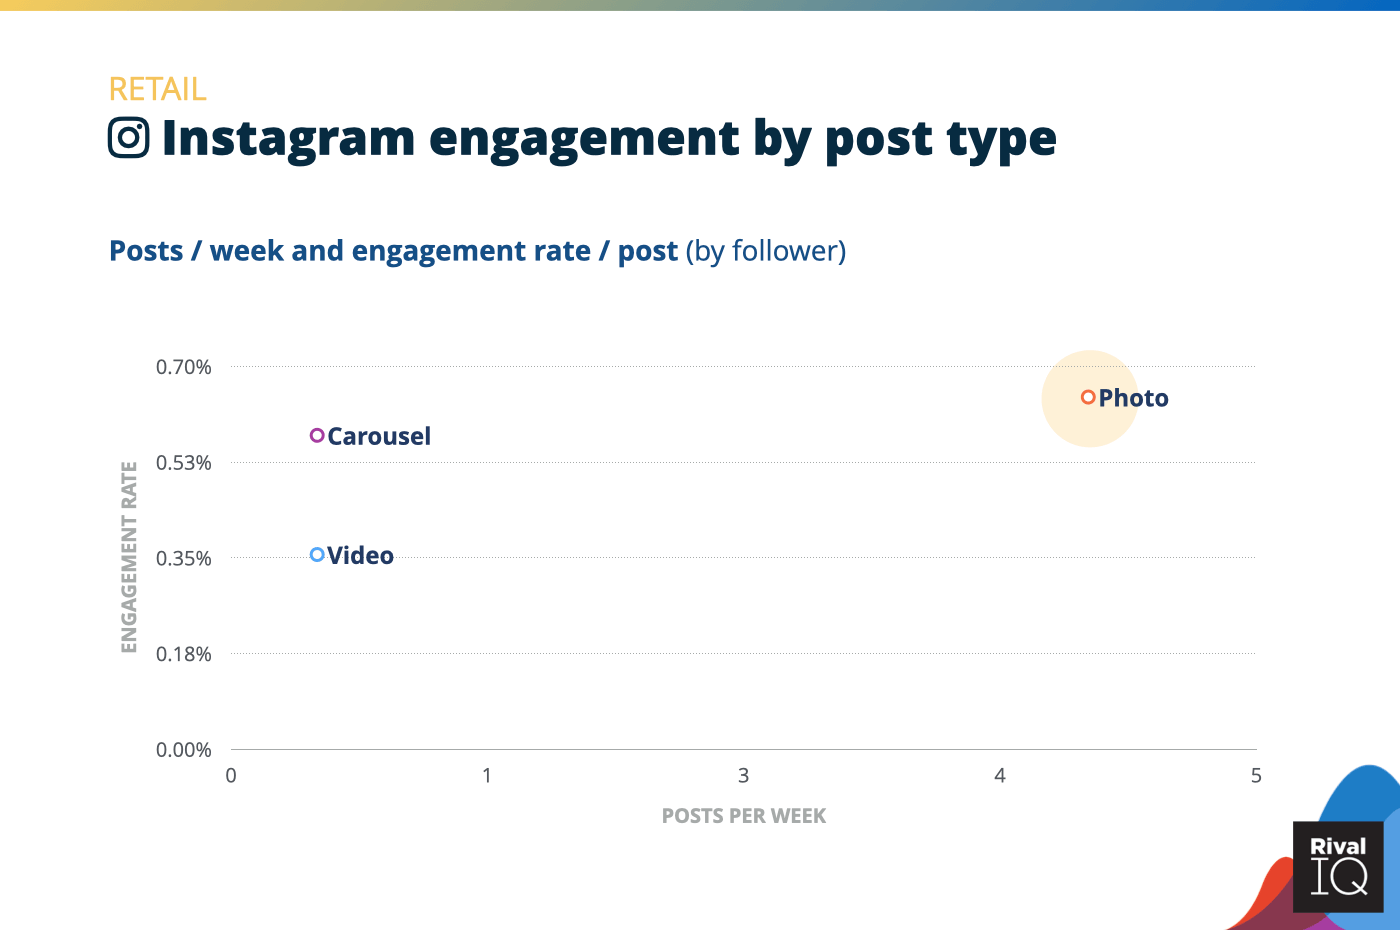 Chart of social media benchmarks for Instagram posts per week and engagement rate by post type, Retail